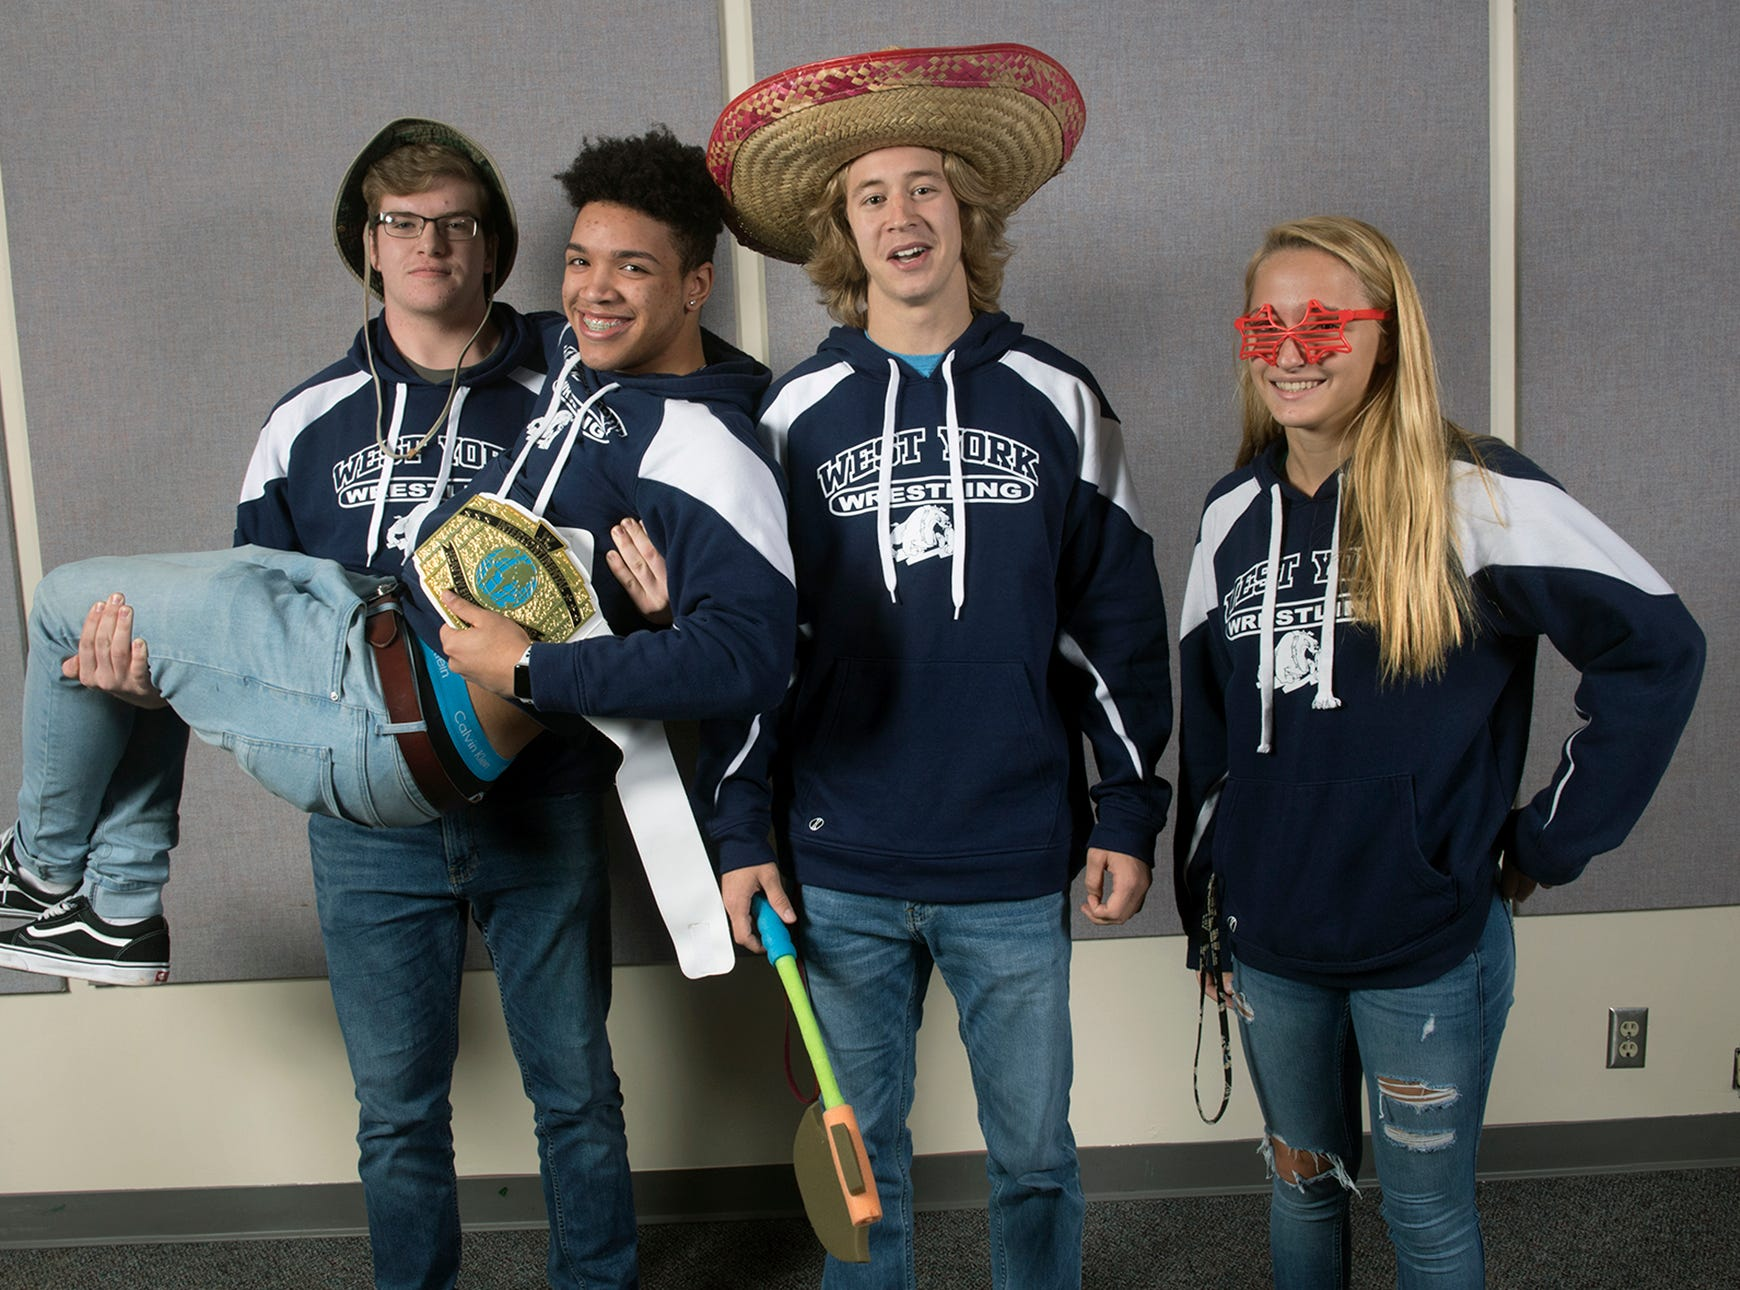 From the left, Frank Veloce, Claudio Cruz II, Luke Stine and Carly Gross, of the West York Area High School wrestling team, pose during the 2018-19 GameTimePa YAIAA Winter Media Day Sunday November 11, 2018.